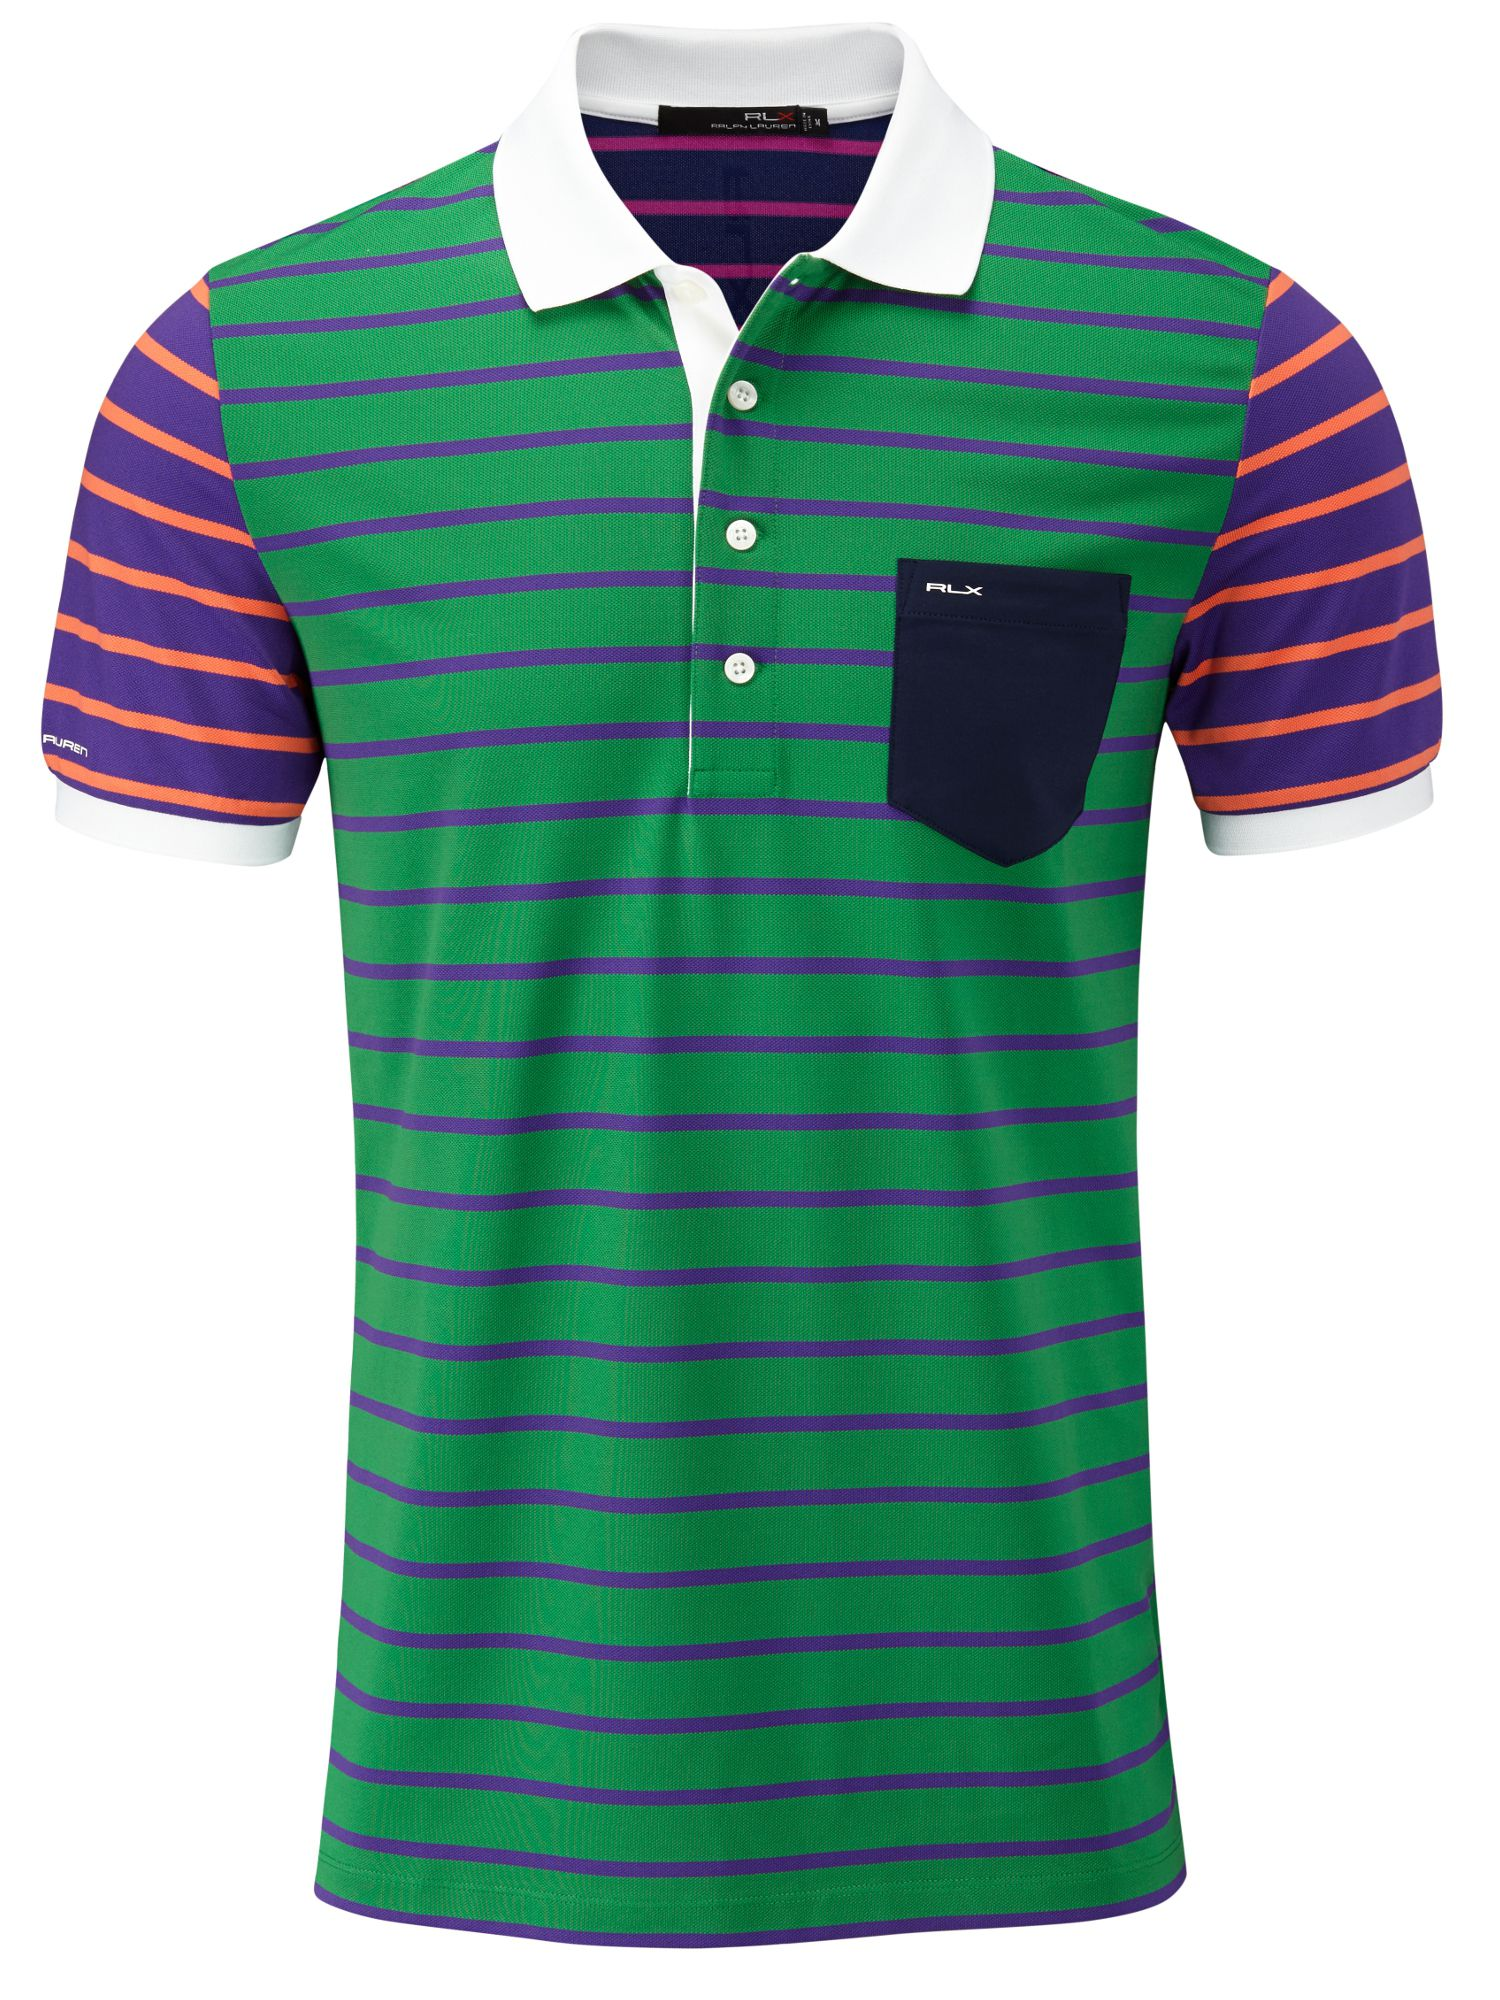 Print striped polo shirt tour fit